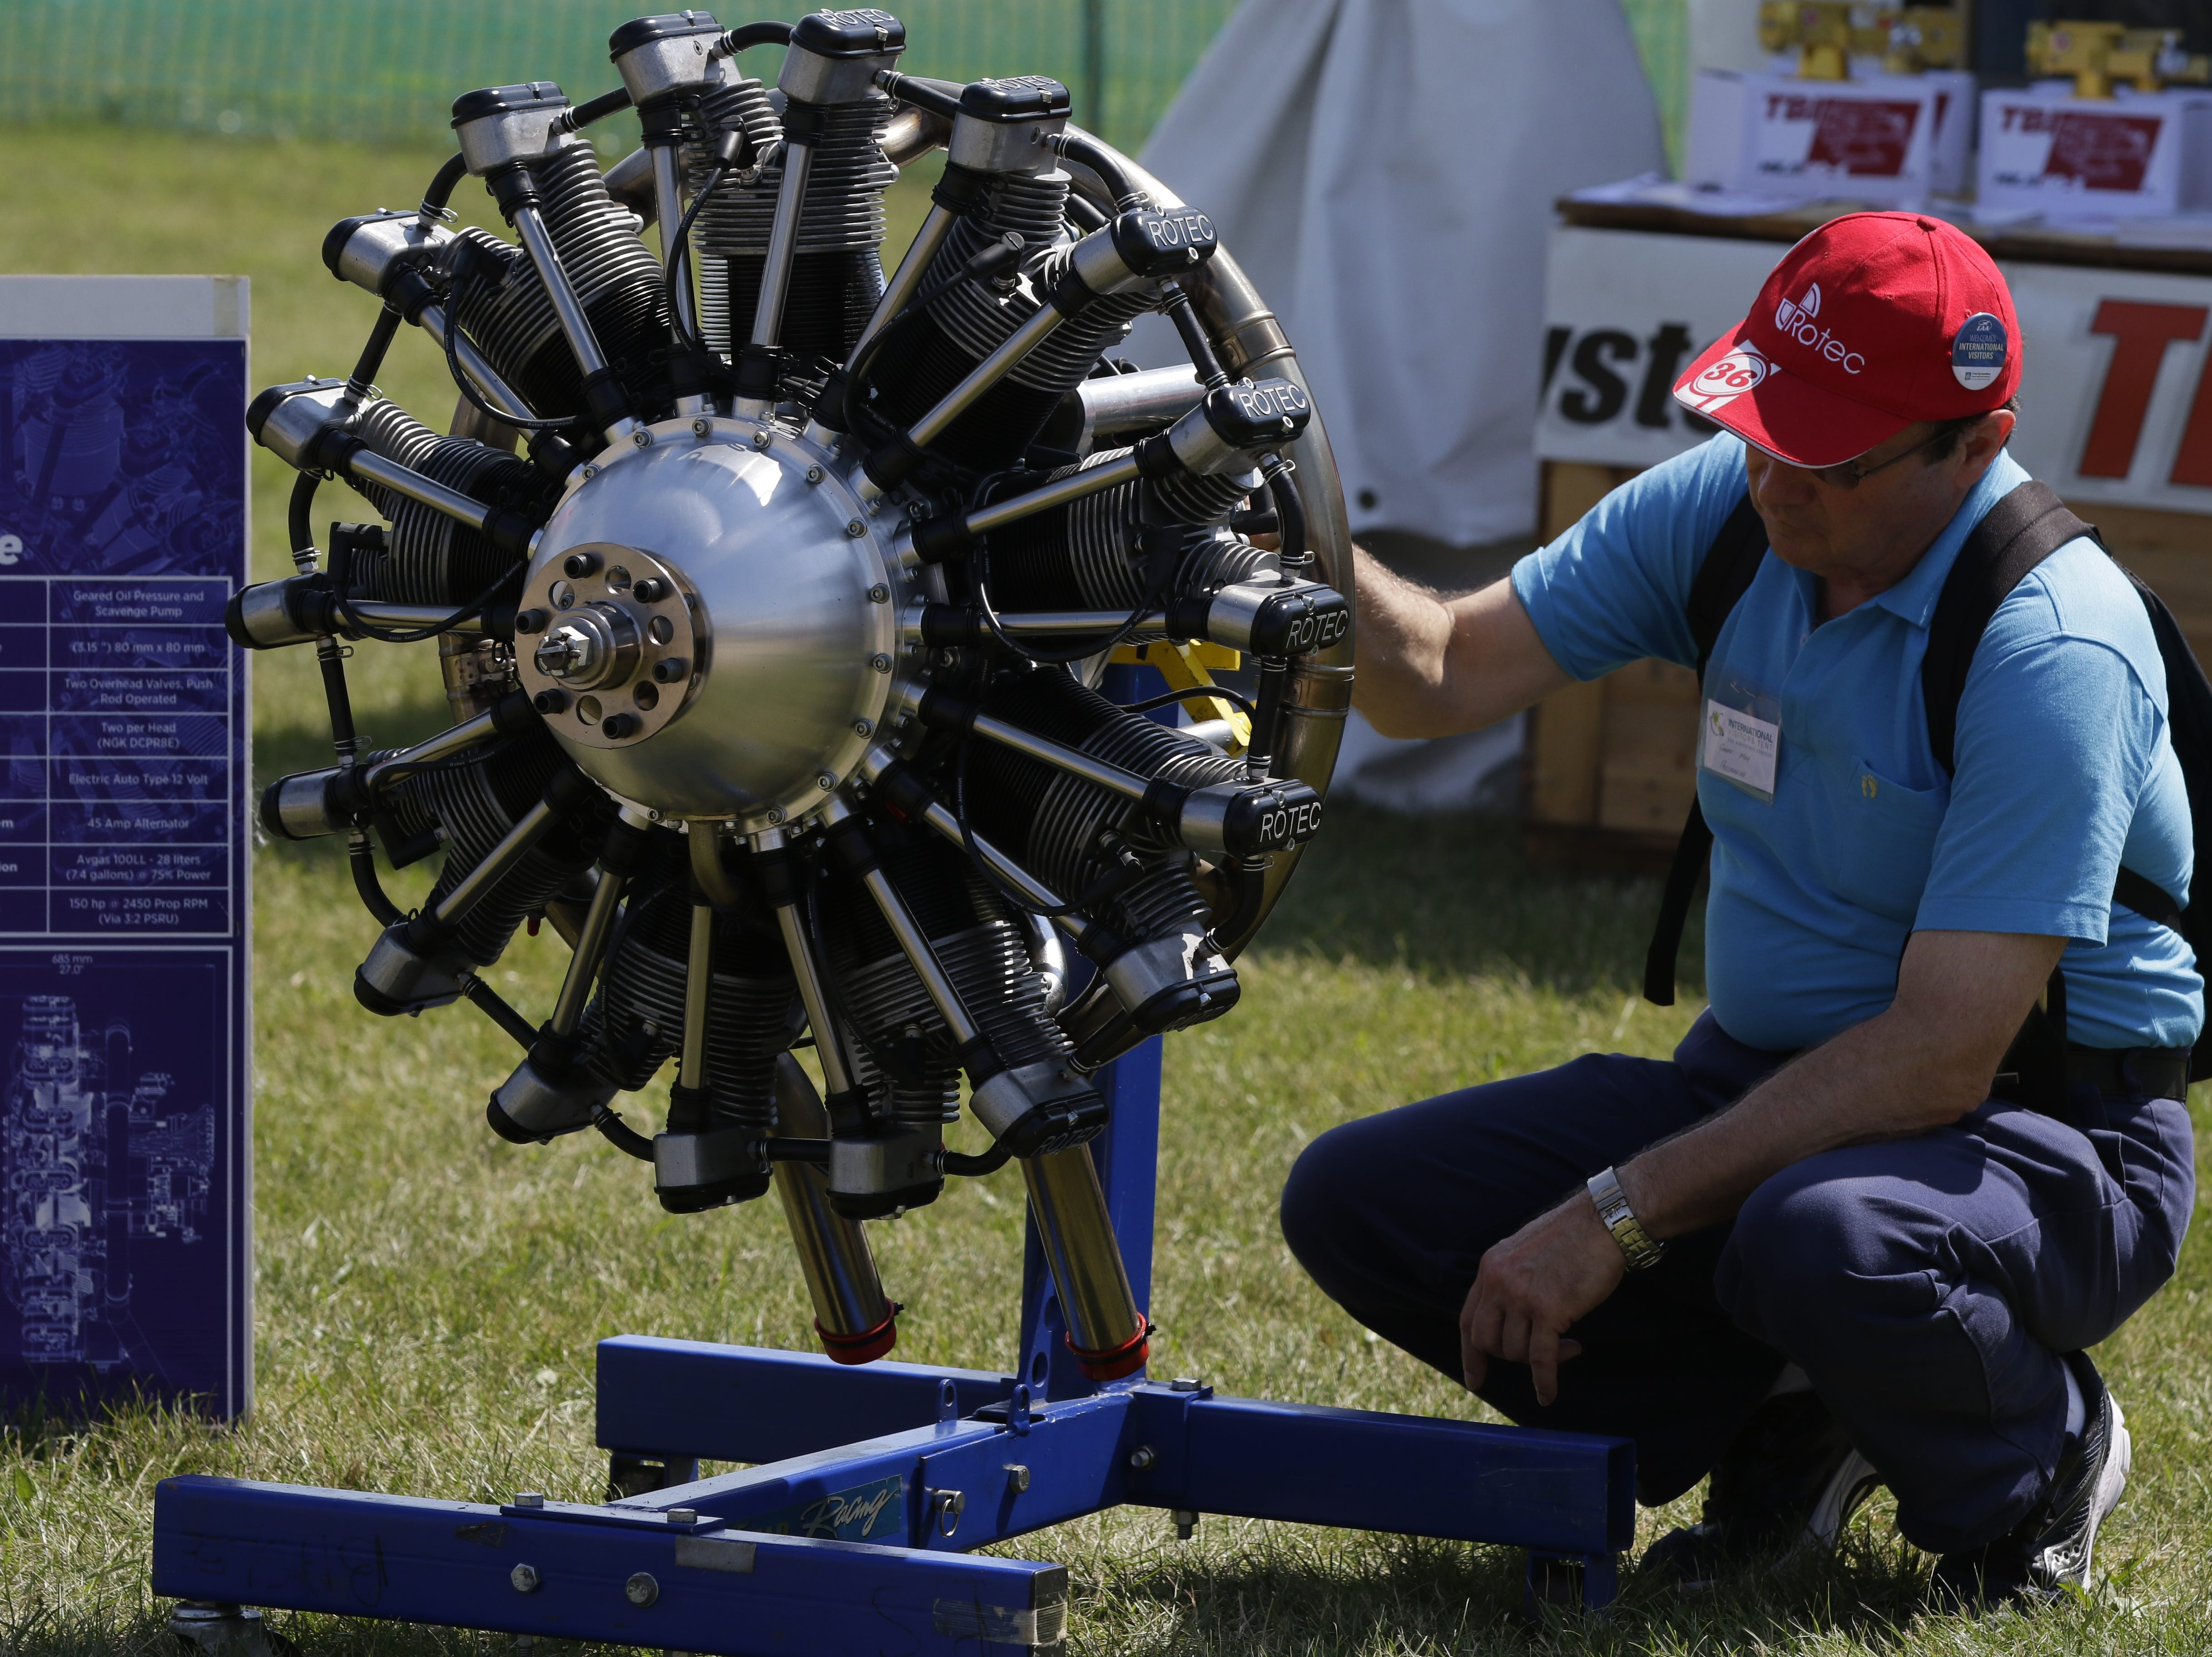 Geoff May of Sydney, Austraila looks over the Rotec R3600 radial engine, Tuesday, July 24, 2018, in Oshkosh, Wis.  The 66th annual Experimental Aircraft Association Fly-In Convention, AirVenture 2018 draws over 500,000 people annually to the area.  The convention runs through July 29. Joe Sienkiewicz/USA Today NETWORK-Wisconsin